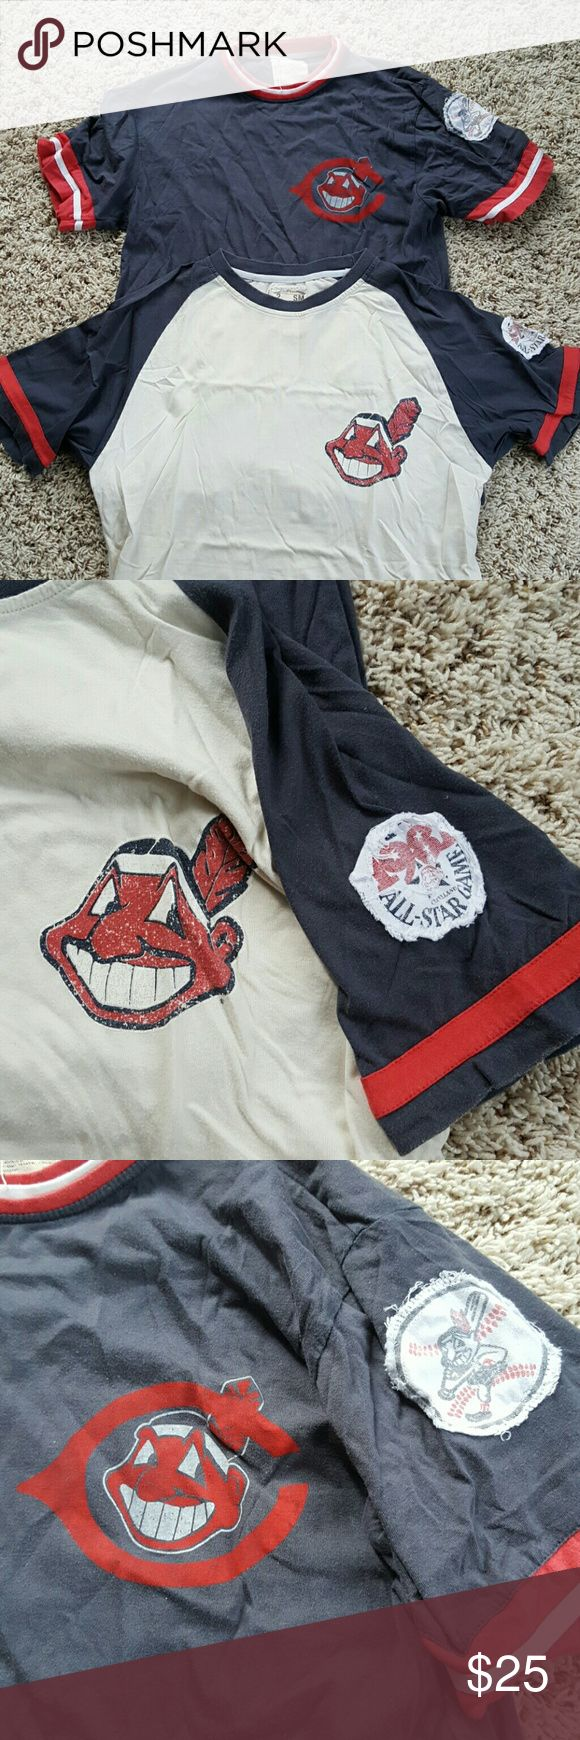 2 vintage Cleveland indians t shirts. Blue and cream. Awesome shirts. They just don't fit anymore. Red Jacket Shirts Tees - Short Sleeve